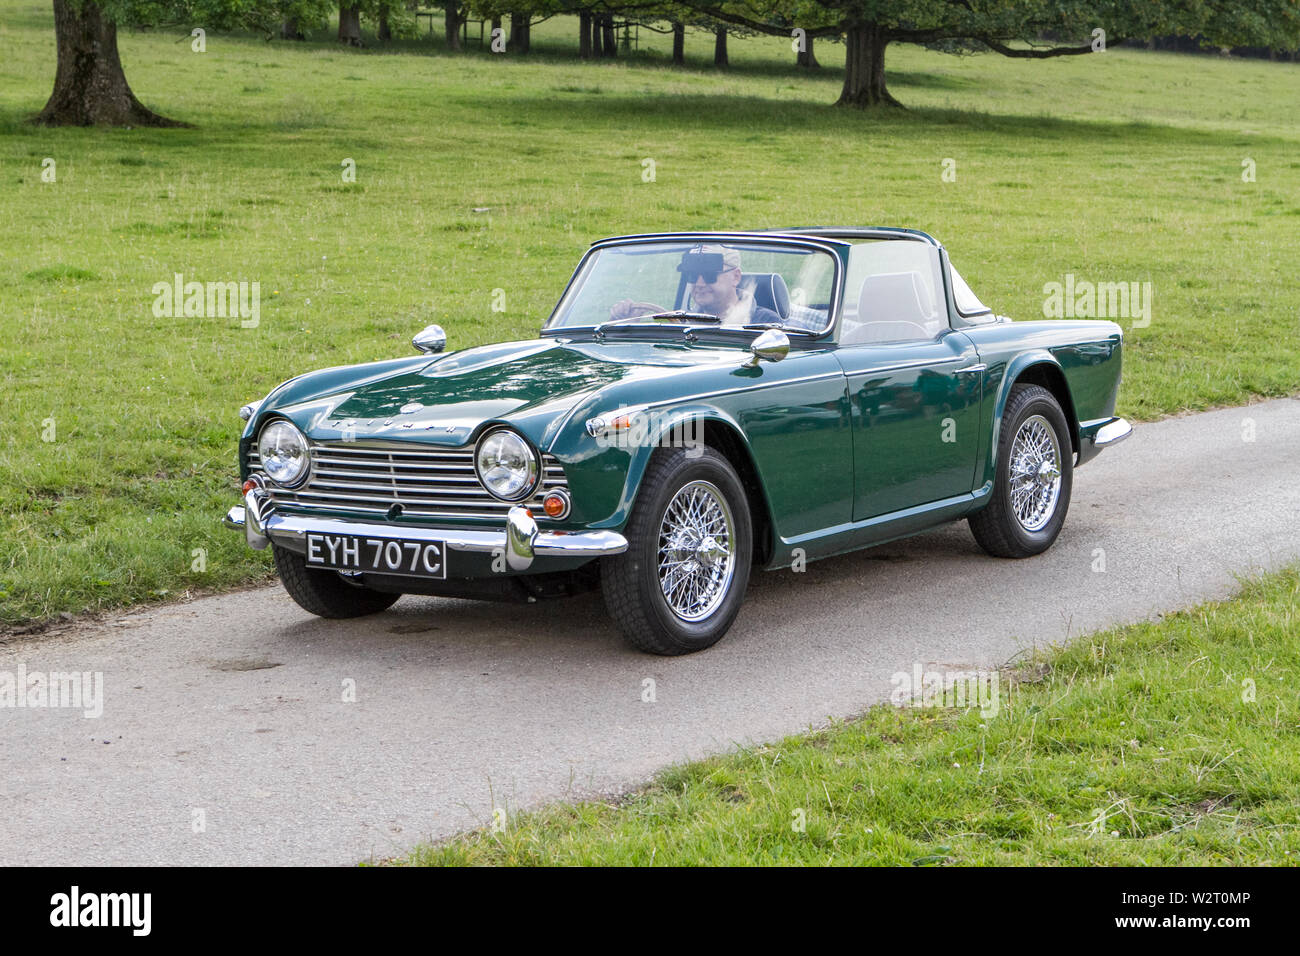 Classic Tr4a Stock Photos & Classic Tr4a Stock Images - Alamy